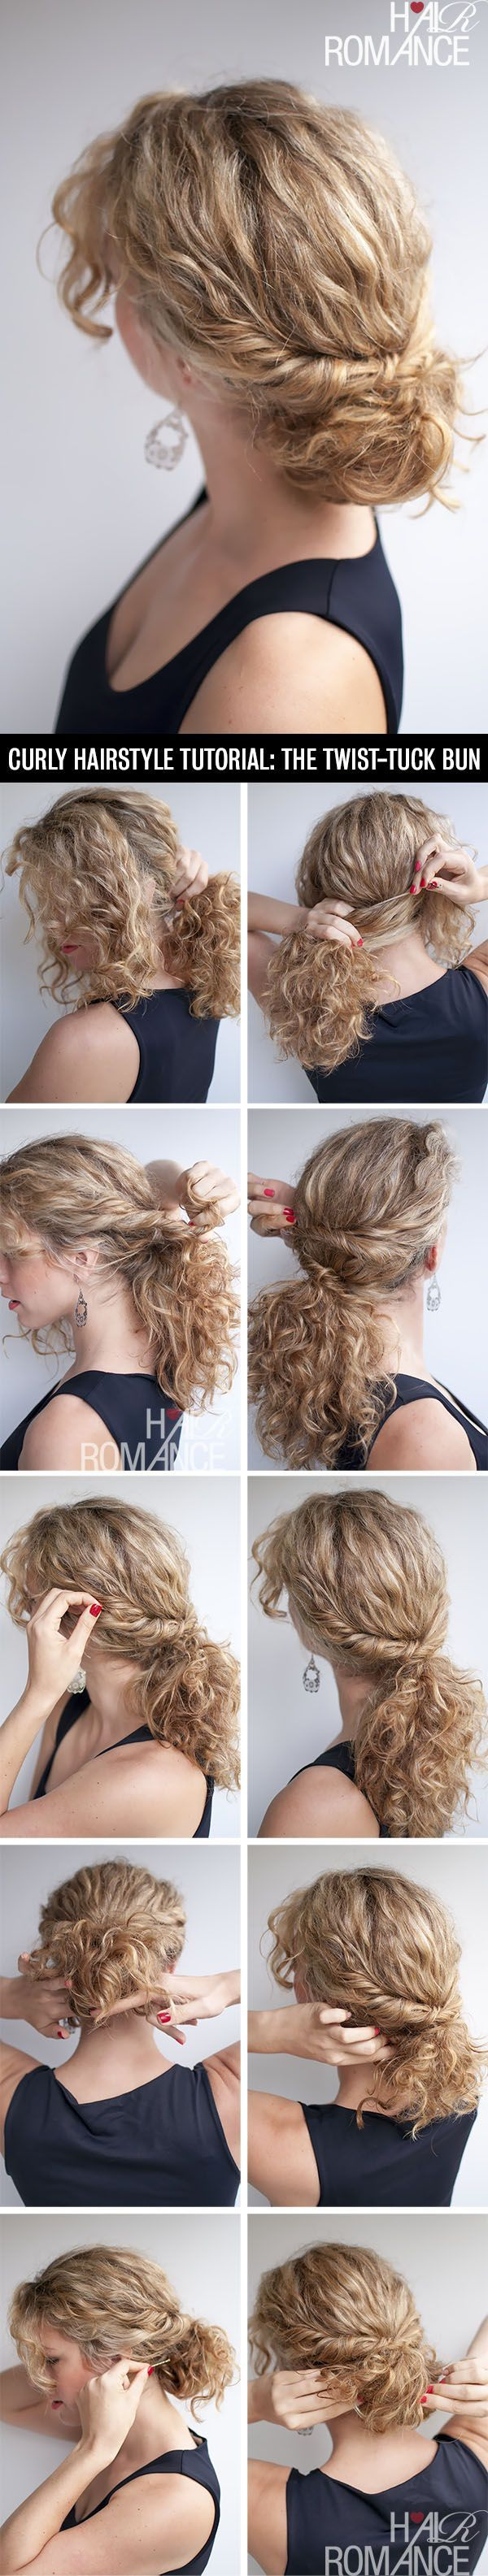 Curly hairstyle tutorial – the Twist-Tuck Bun  Curly Hairstyles